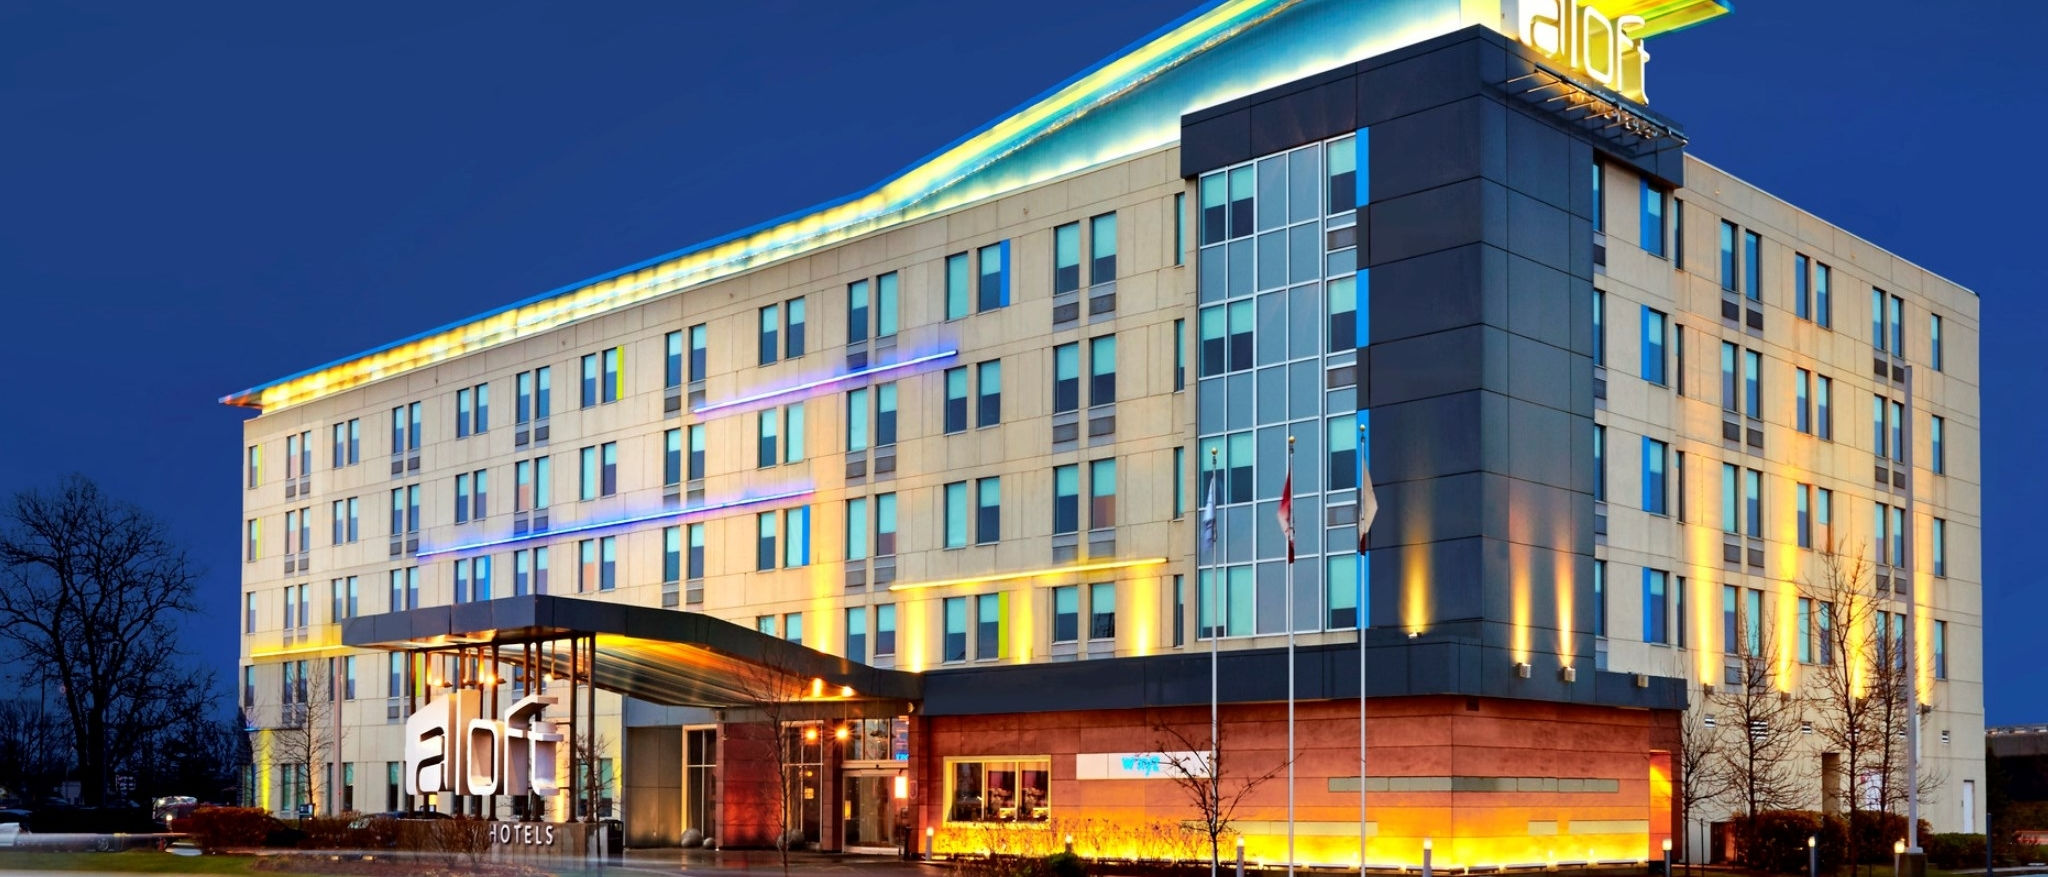 Aloft Montreal Airport - Hotel Exterior